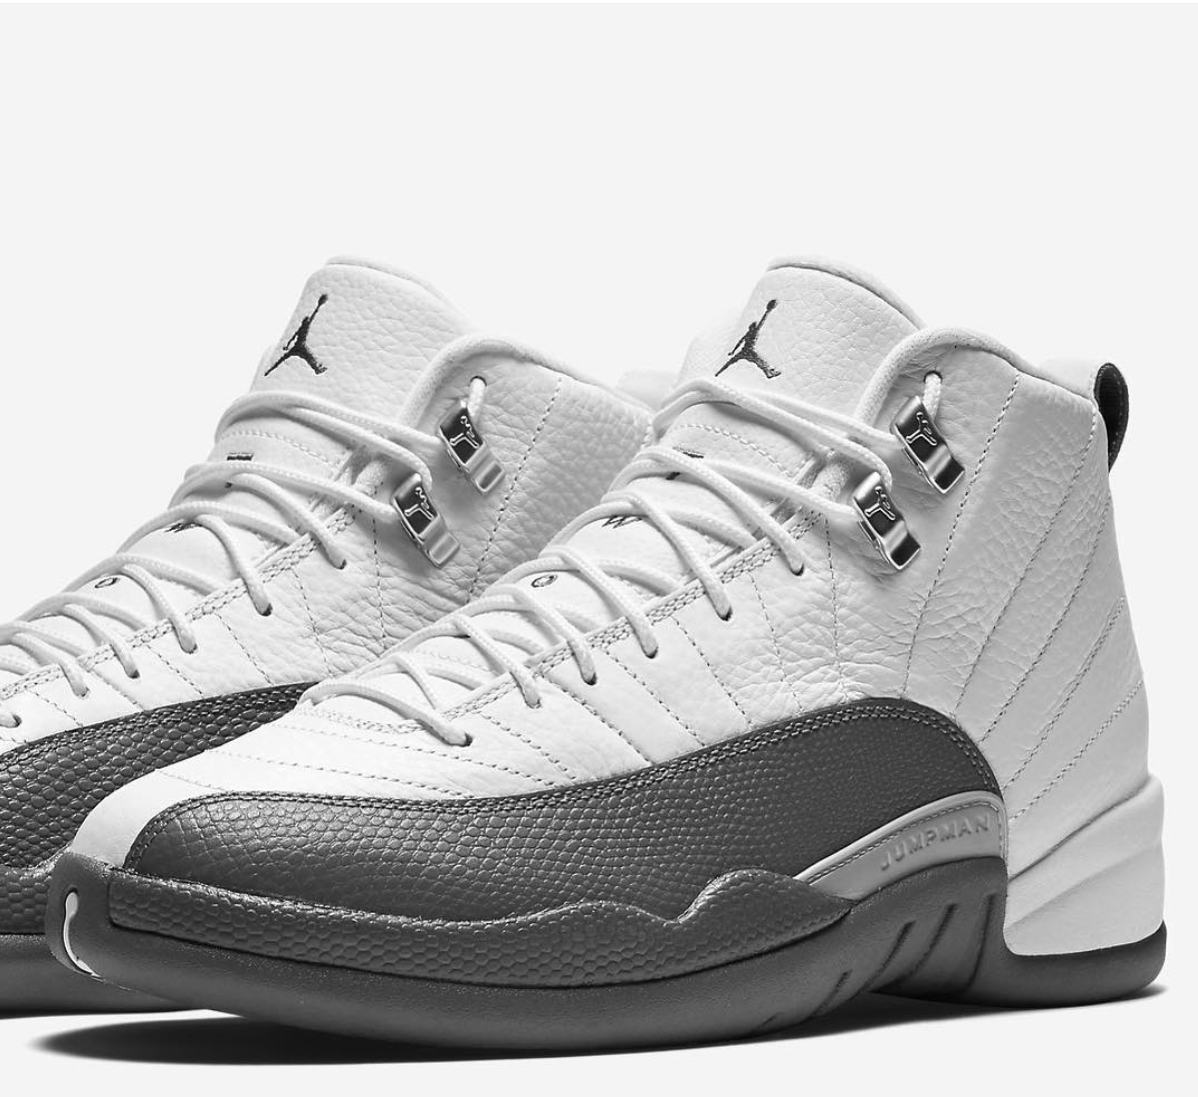 brand new 8c37f ccc0e Dark Grey and Gym Red Air Jordan 12 coming in December ...